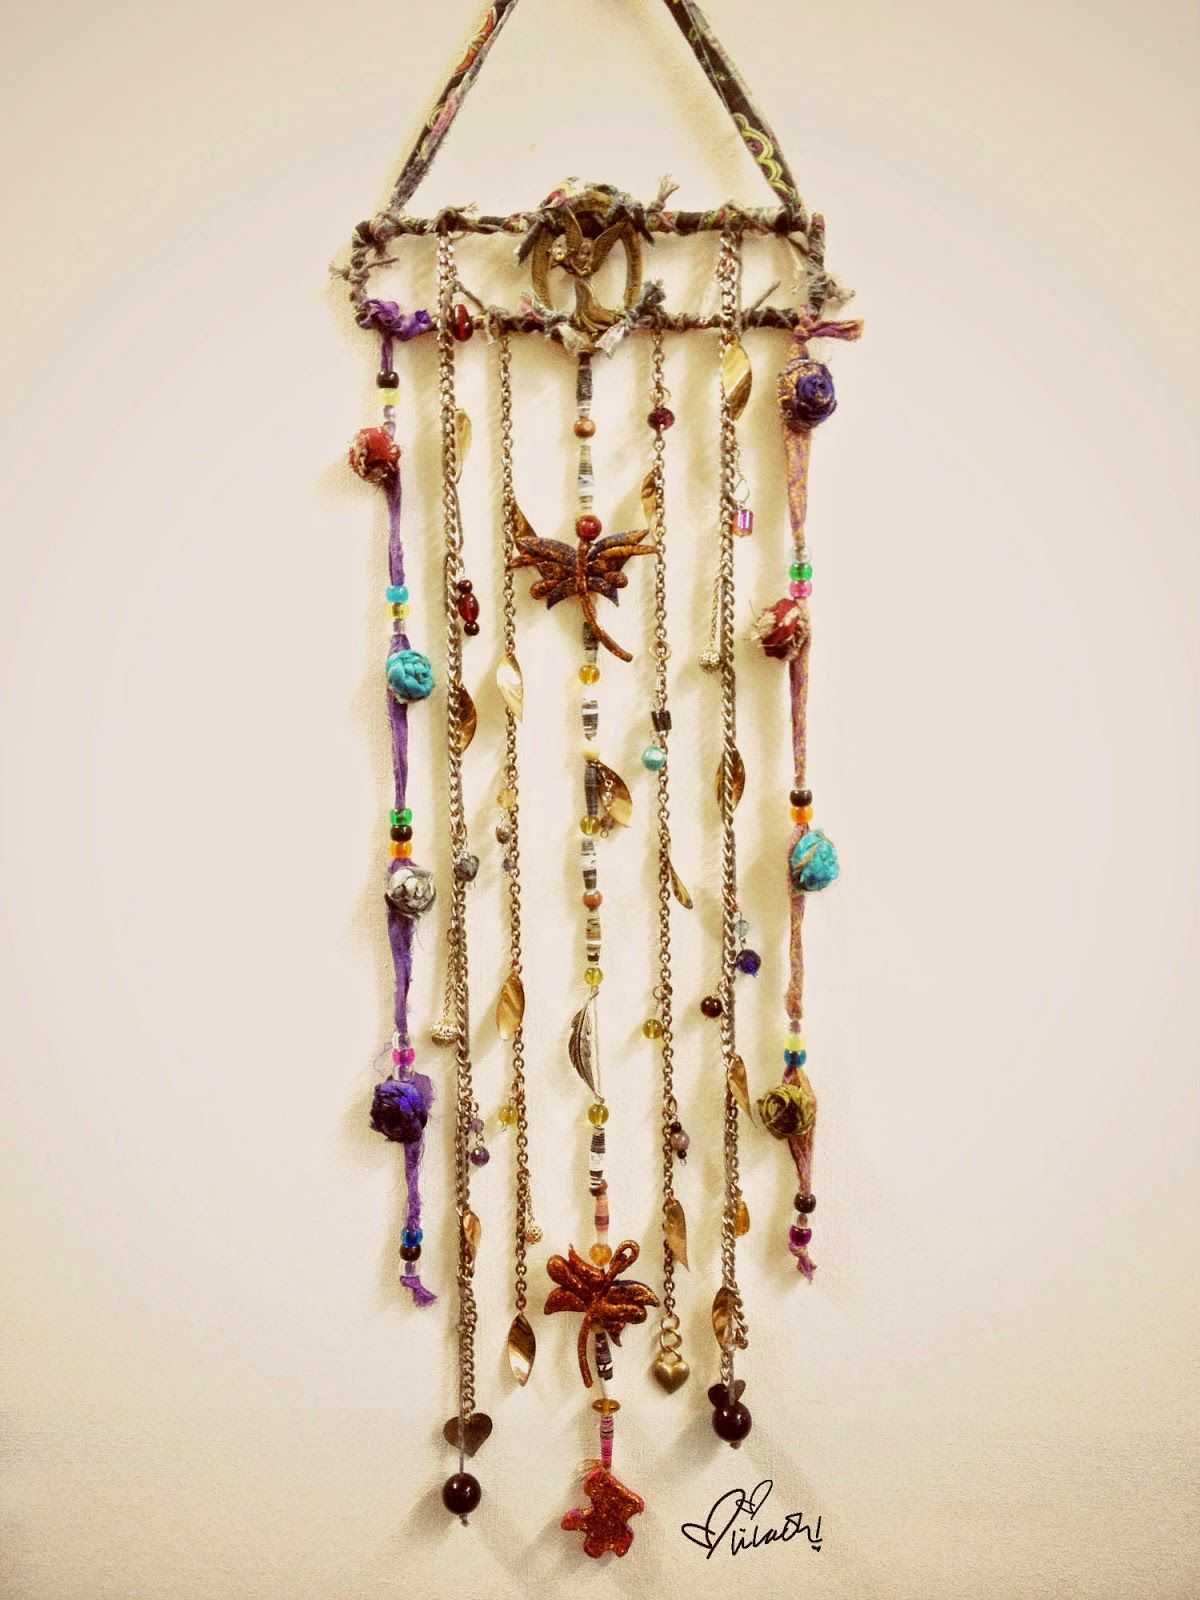 Boho Wall Hanging boho decor wall hanging handmade lilaoh | boho lovers | pinterest